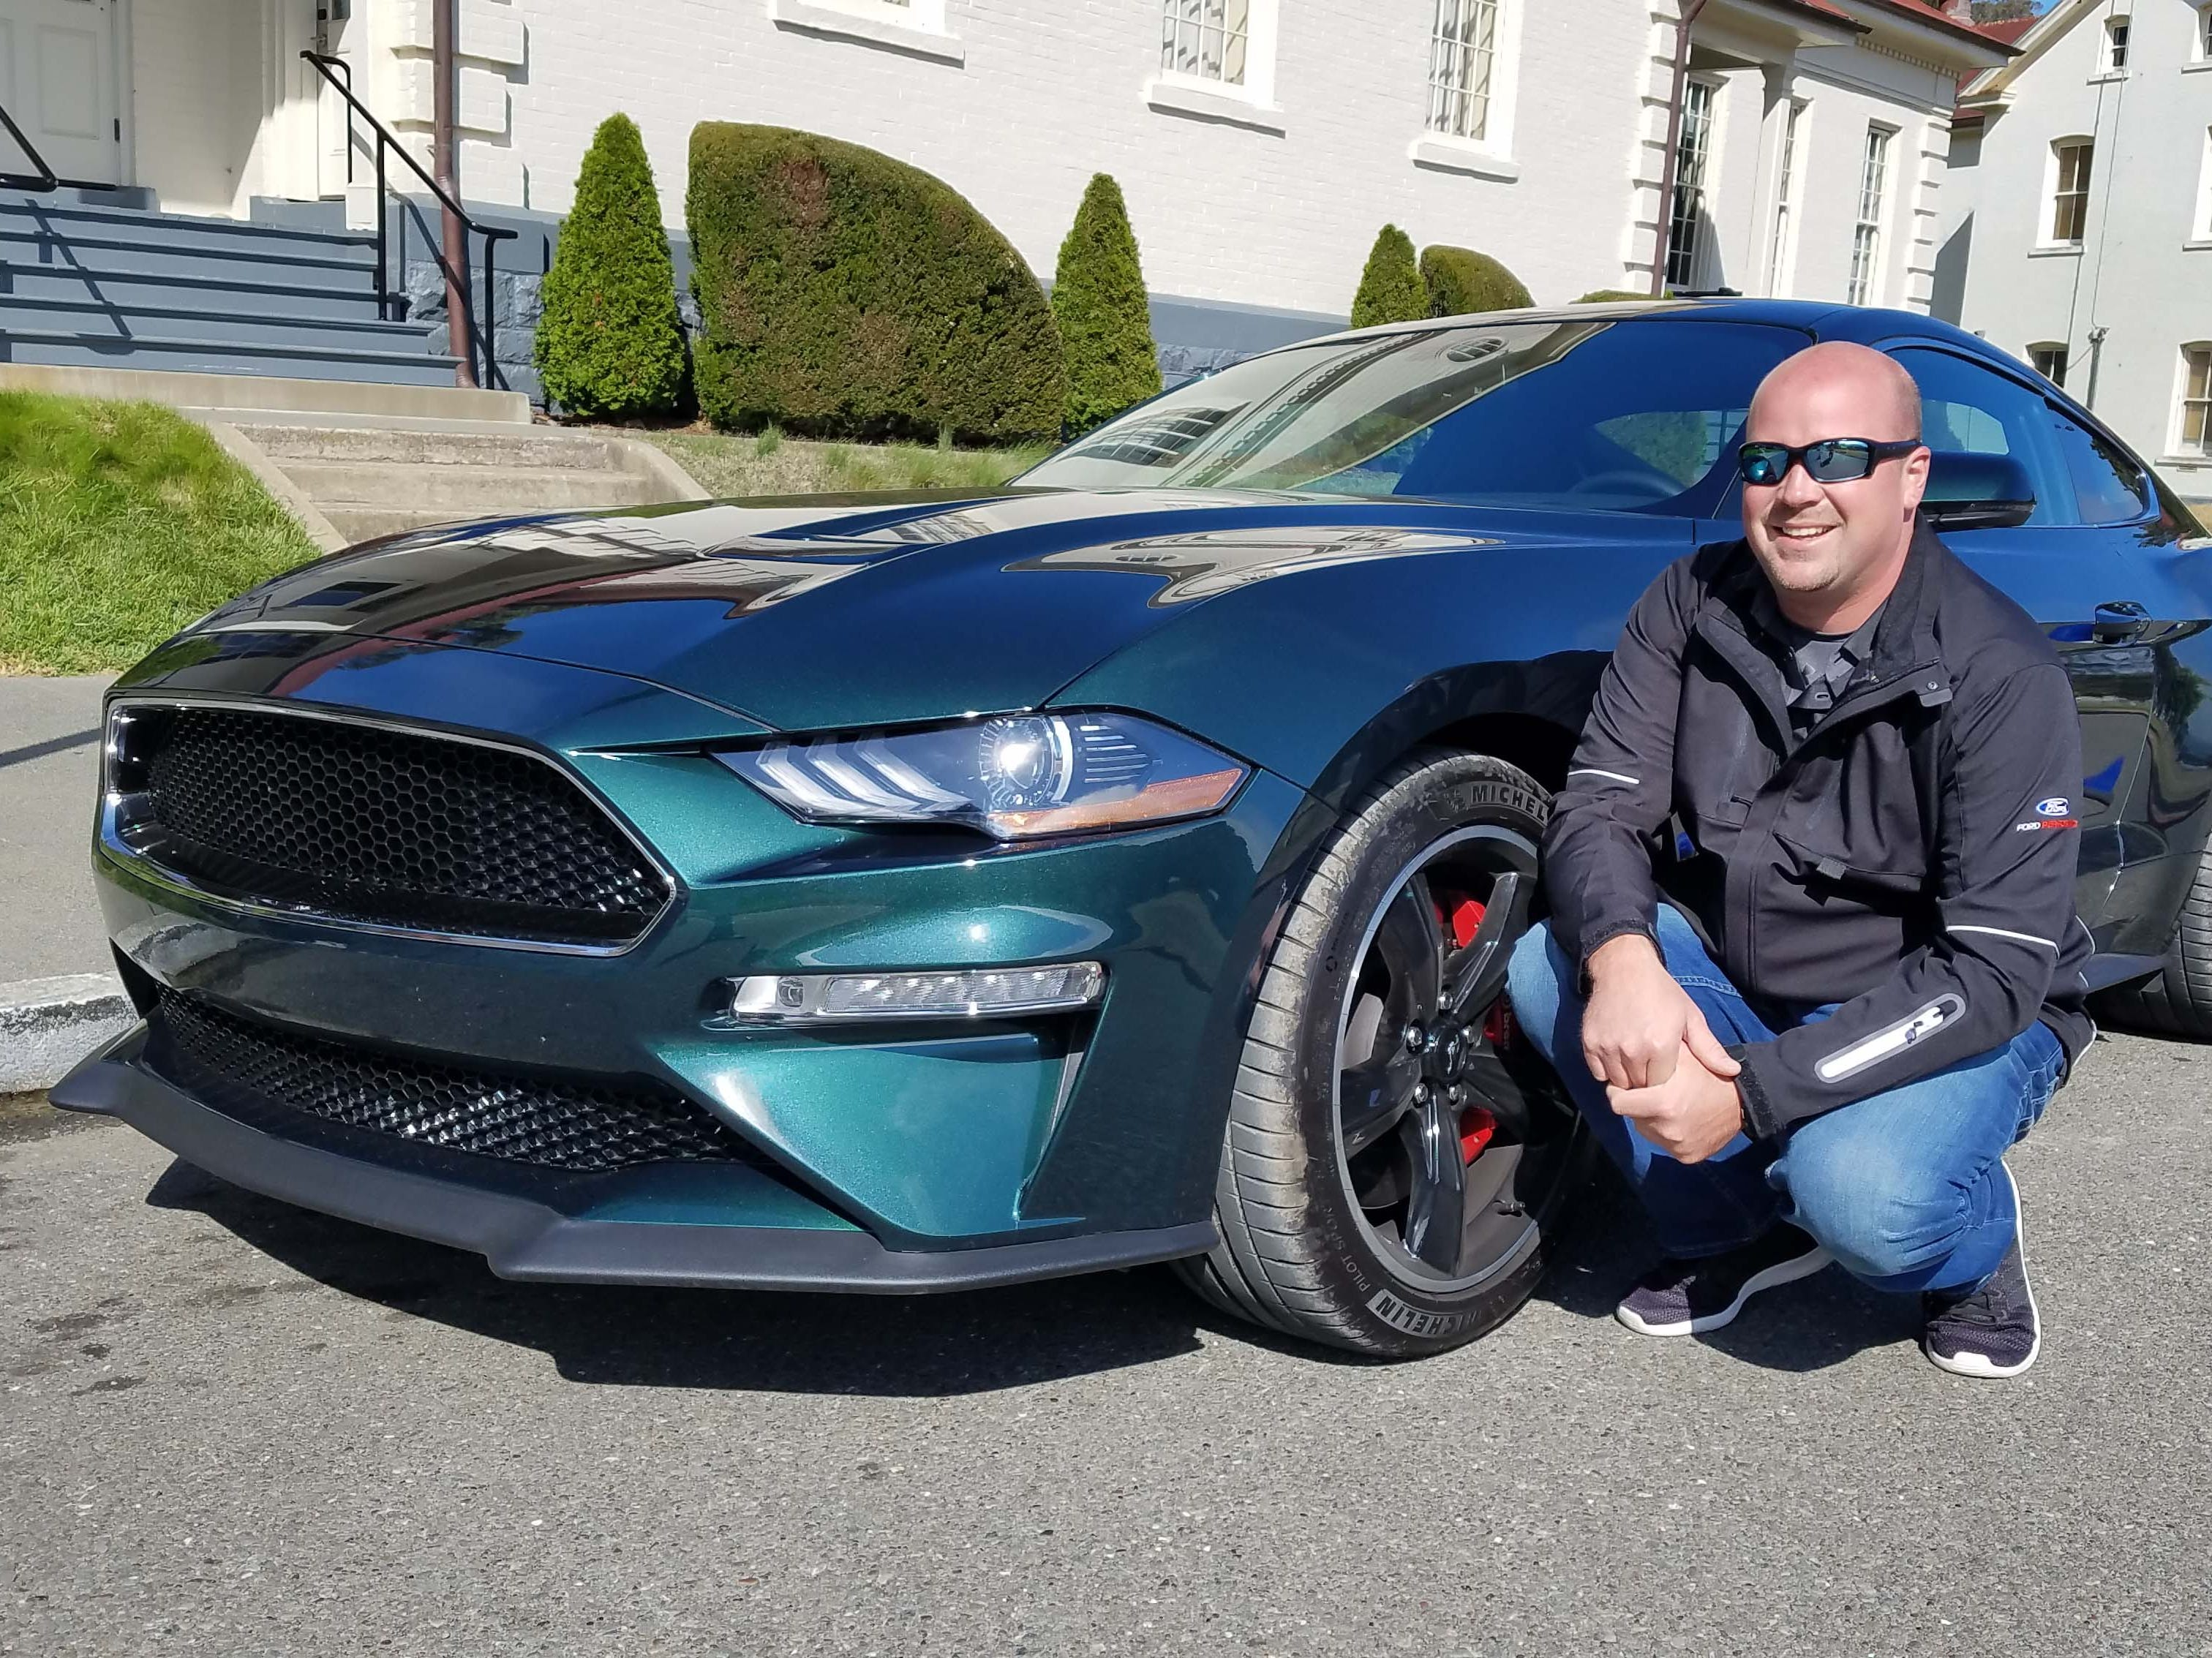 Sean Kiernan owns the original, 1968 Mustang Bullitt that starred in the movie of the same name. Kiernan is also adding a 2019 Ford Mustang Bullitt to his stable of pony cars.